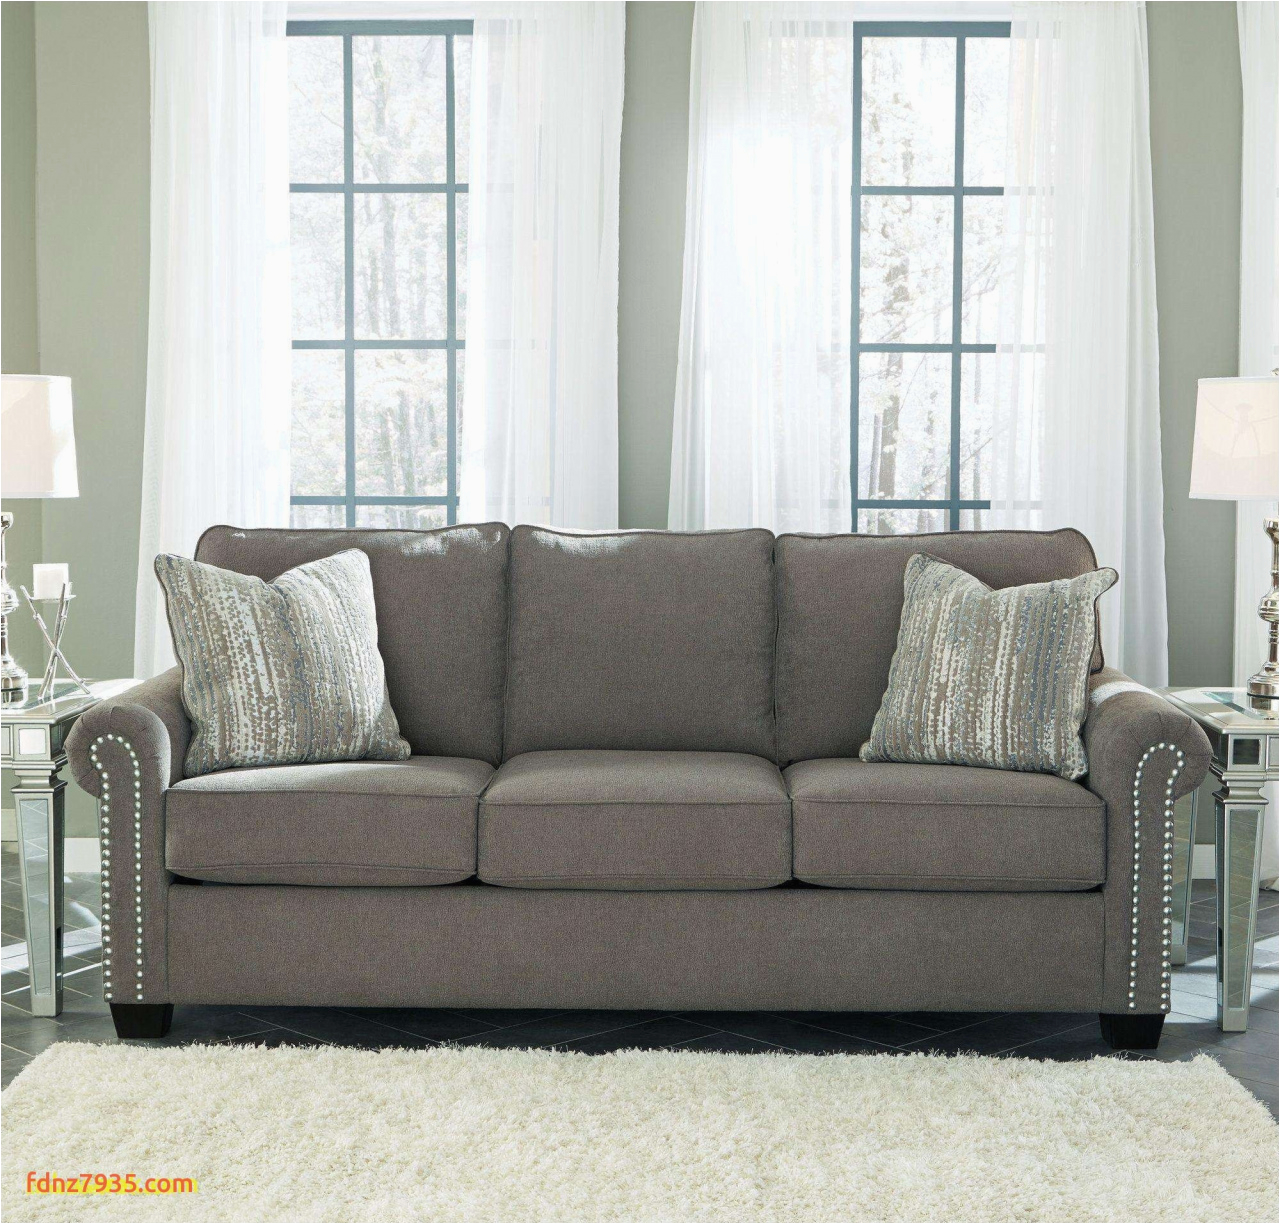 full size sofa bed 30 great white pillows brown couch durch full size sofa bed